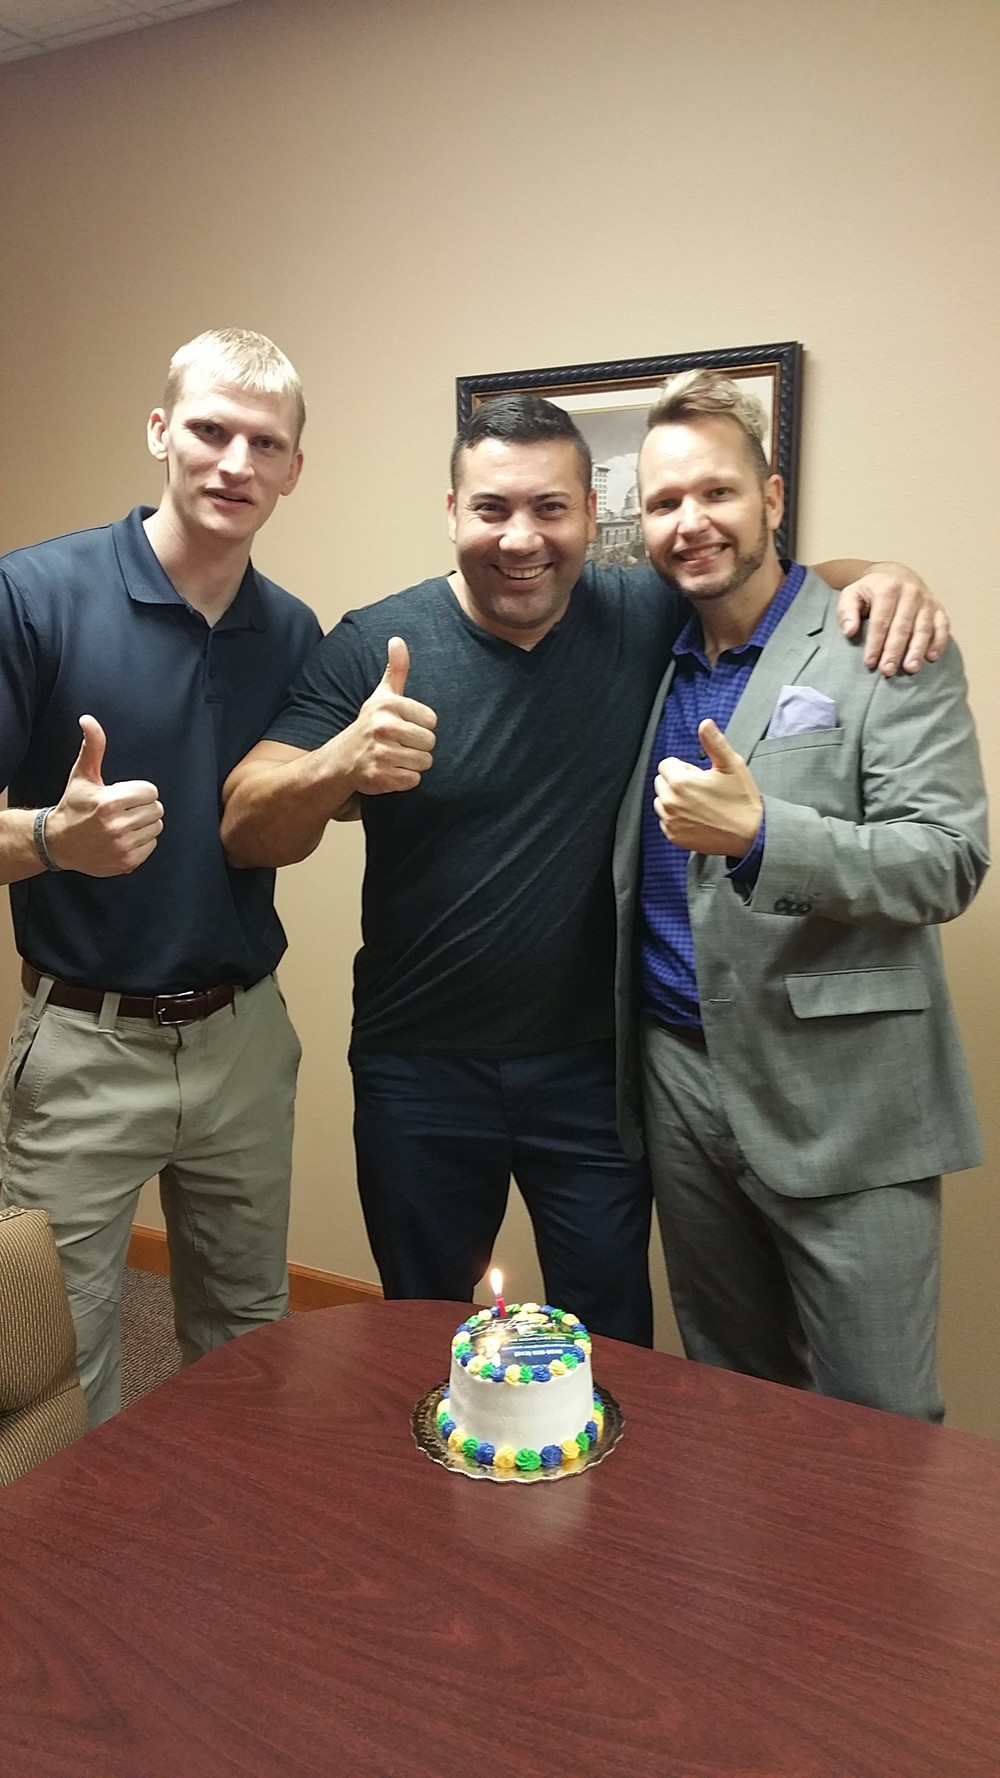 Congrats to Eli Campos on the purchase of his new home! Special kudos to his spectacular Realtor, Danny Crist with Keller Williams - South Tampa for finding him the absolutely perfect home!